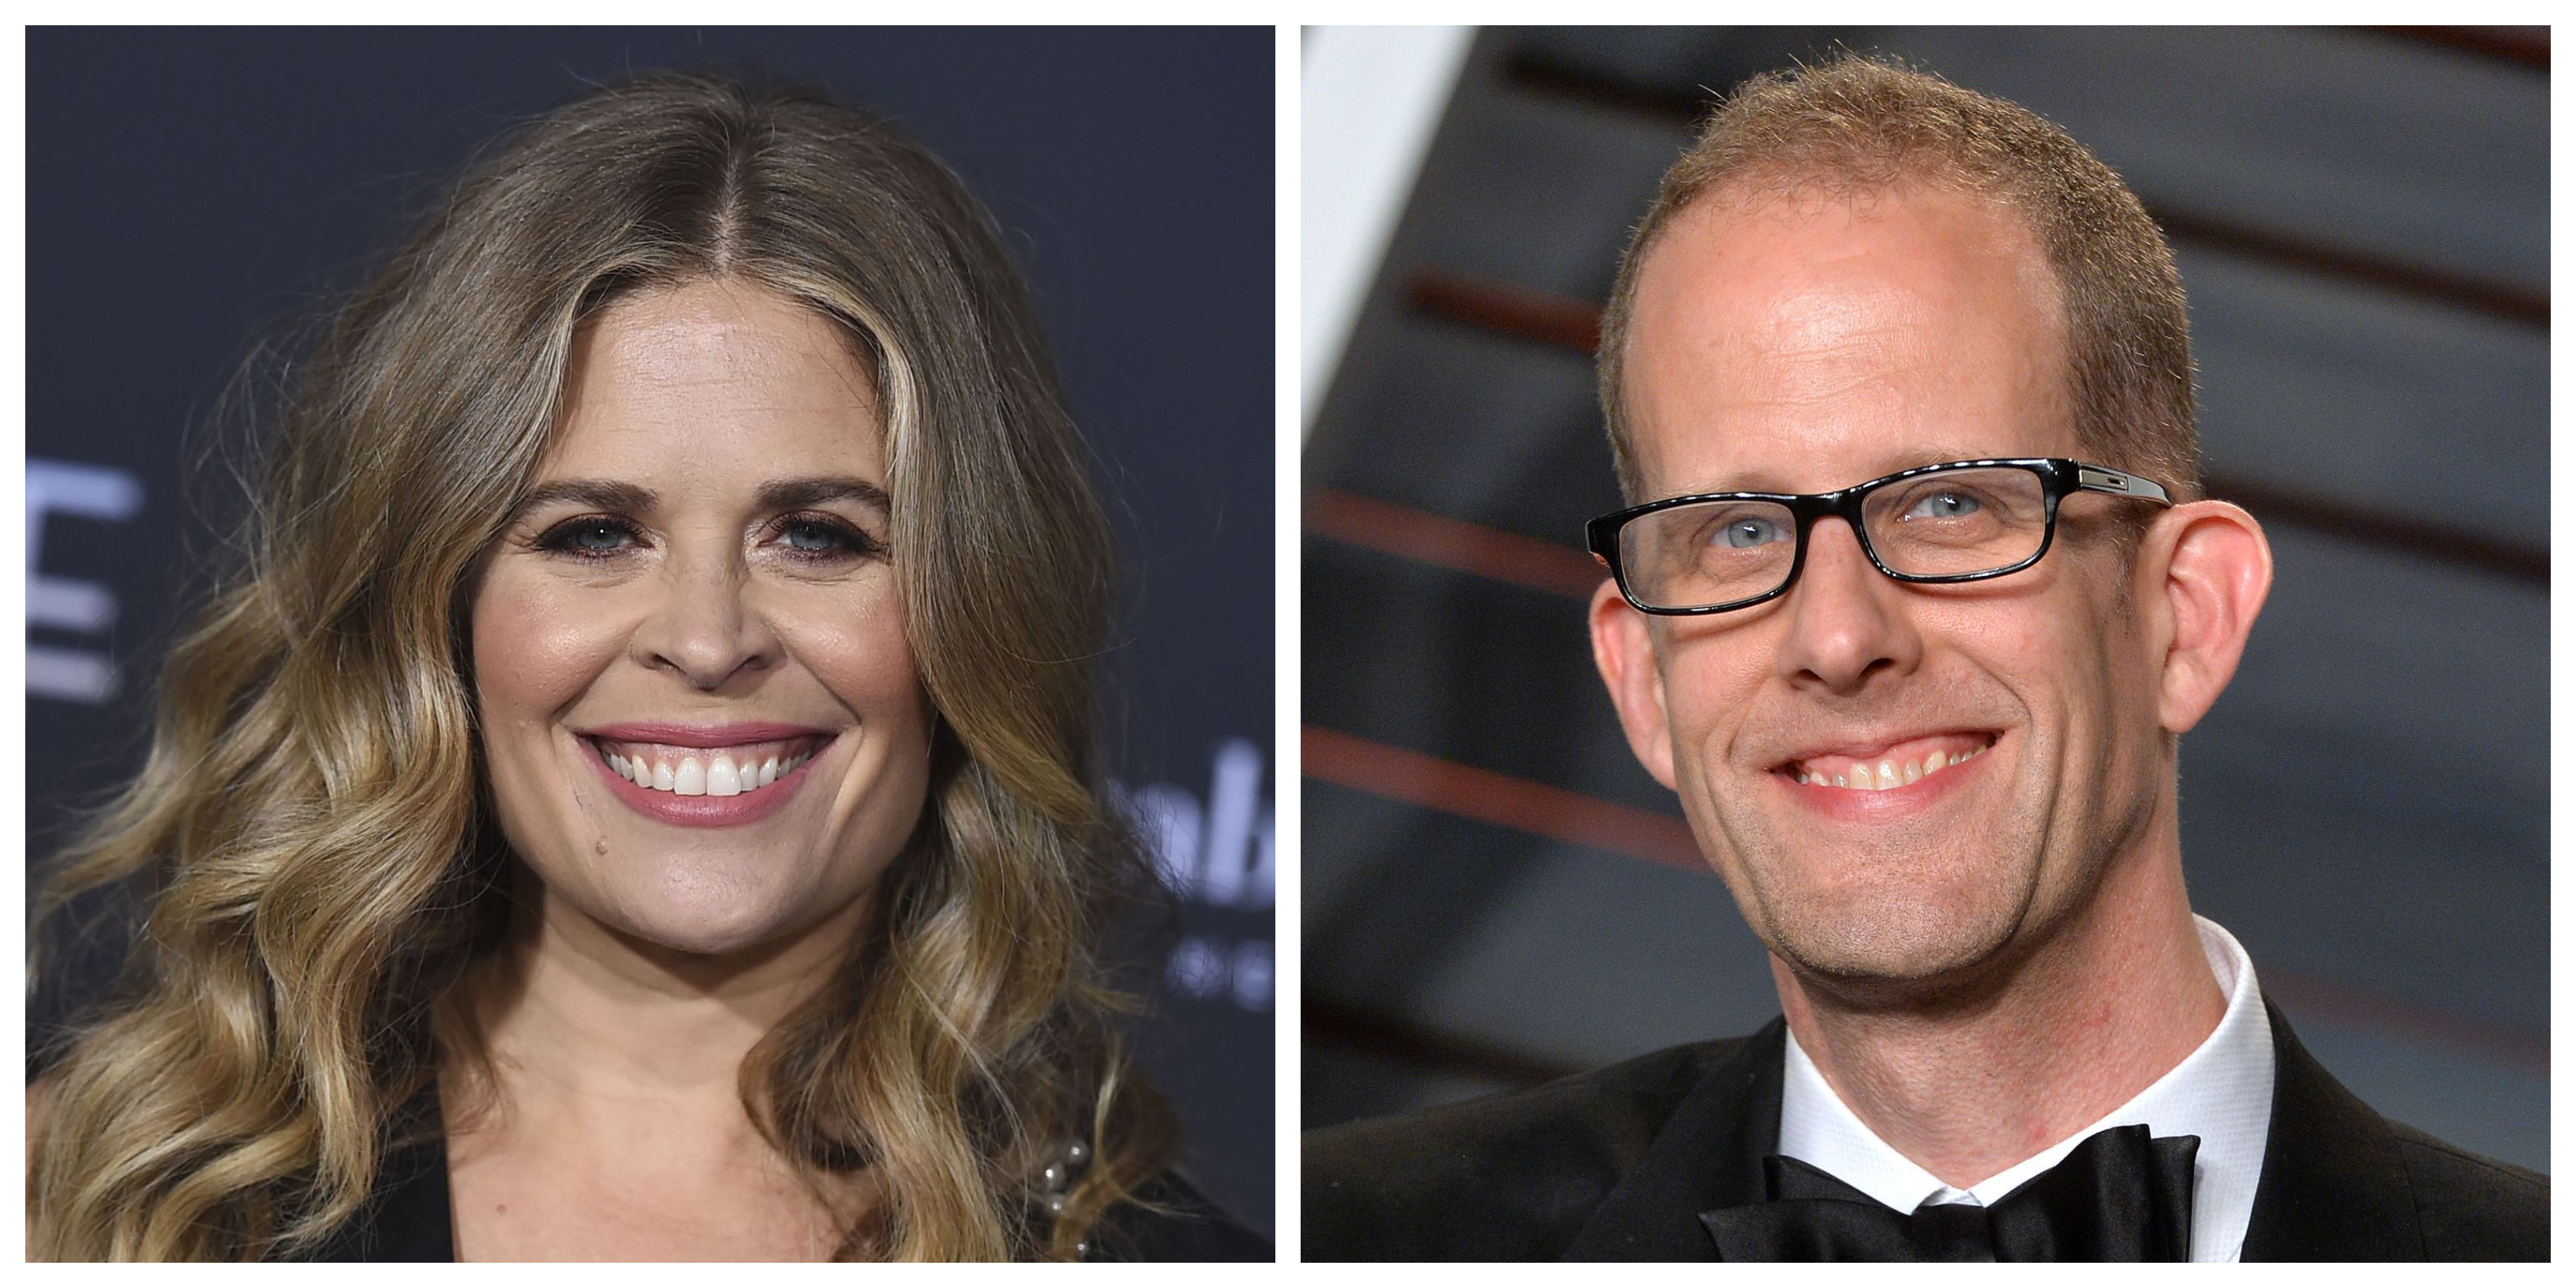 Pete Docter and Jennifer Lee to Take Over Pixar, Disney Animation